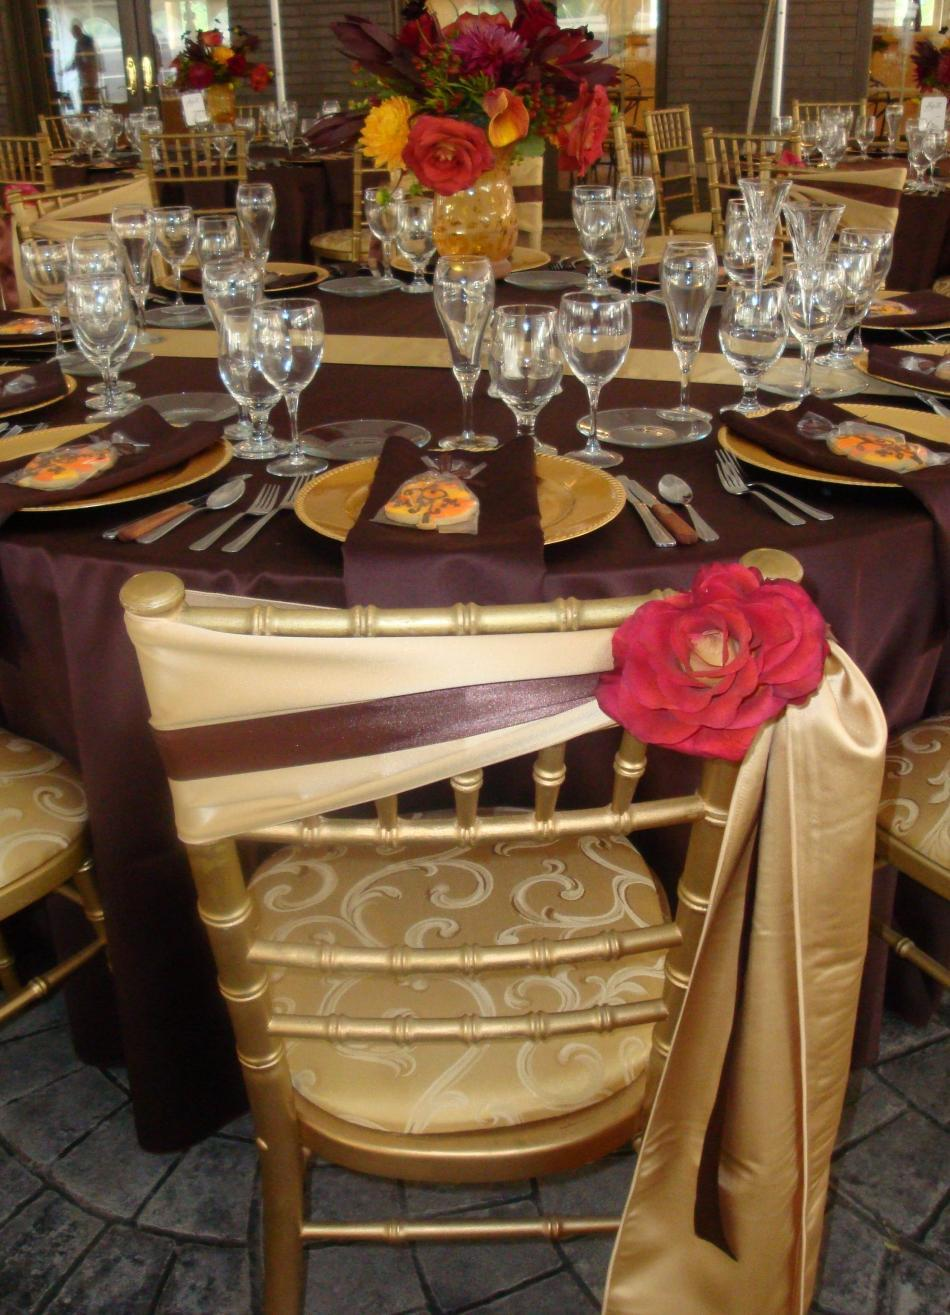 Jodys-pantry-catering-gold-burgendy-table-setting-red-flower-on-chair.full